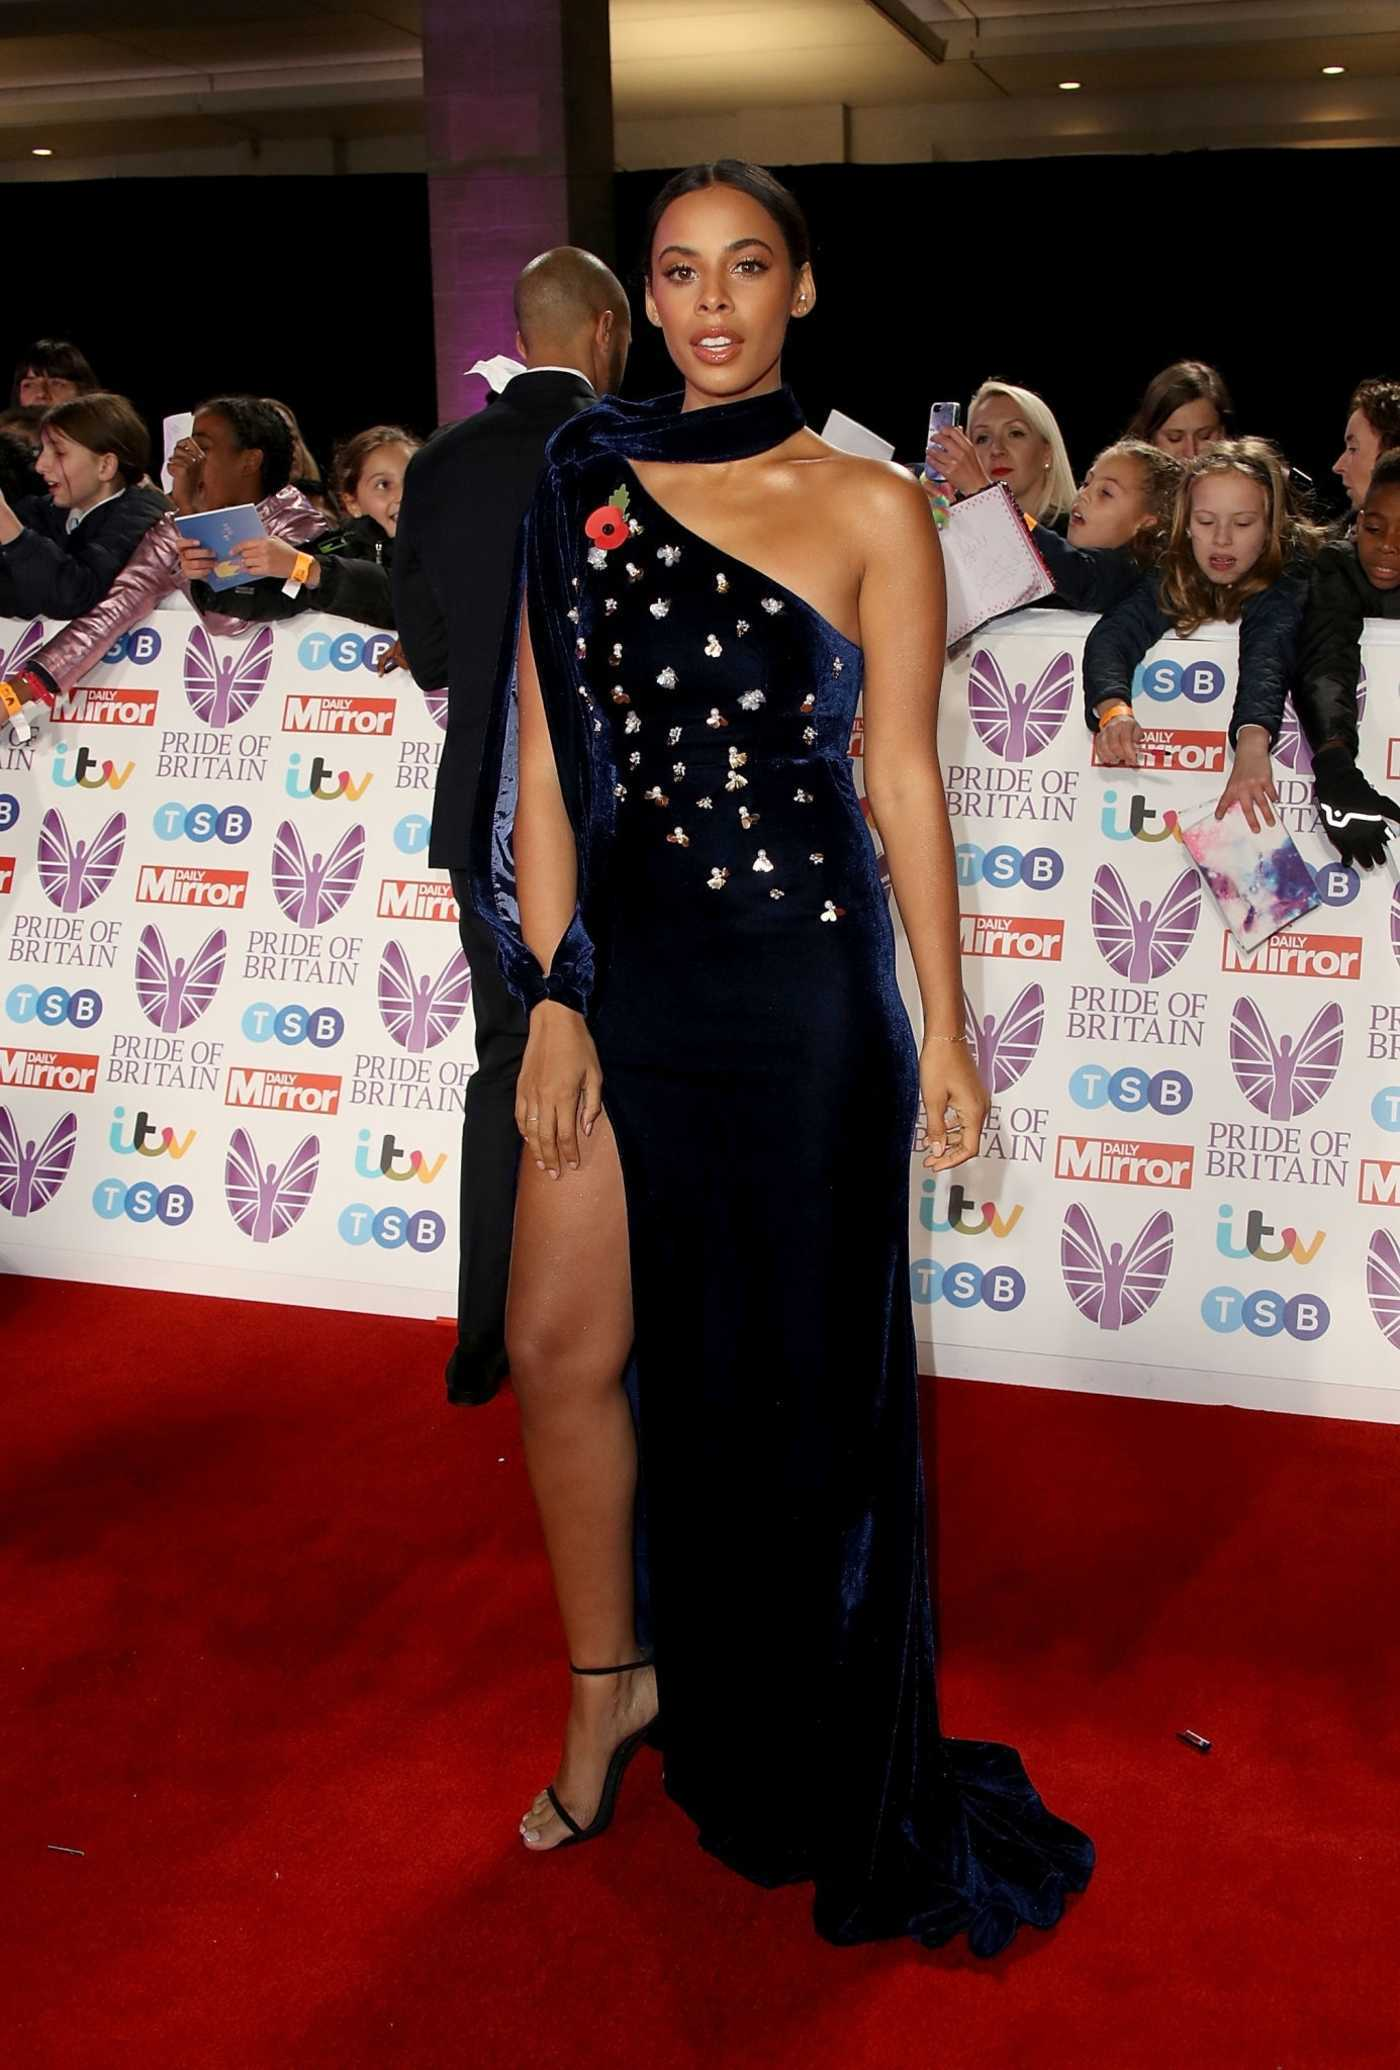 Rochelle Humes Attends 2018 Pride of Britain Awards in London 10/29/2018